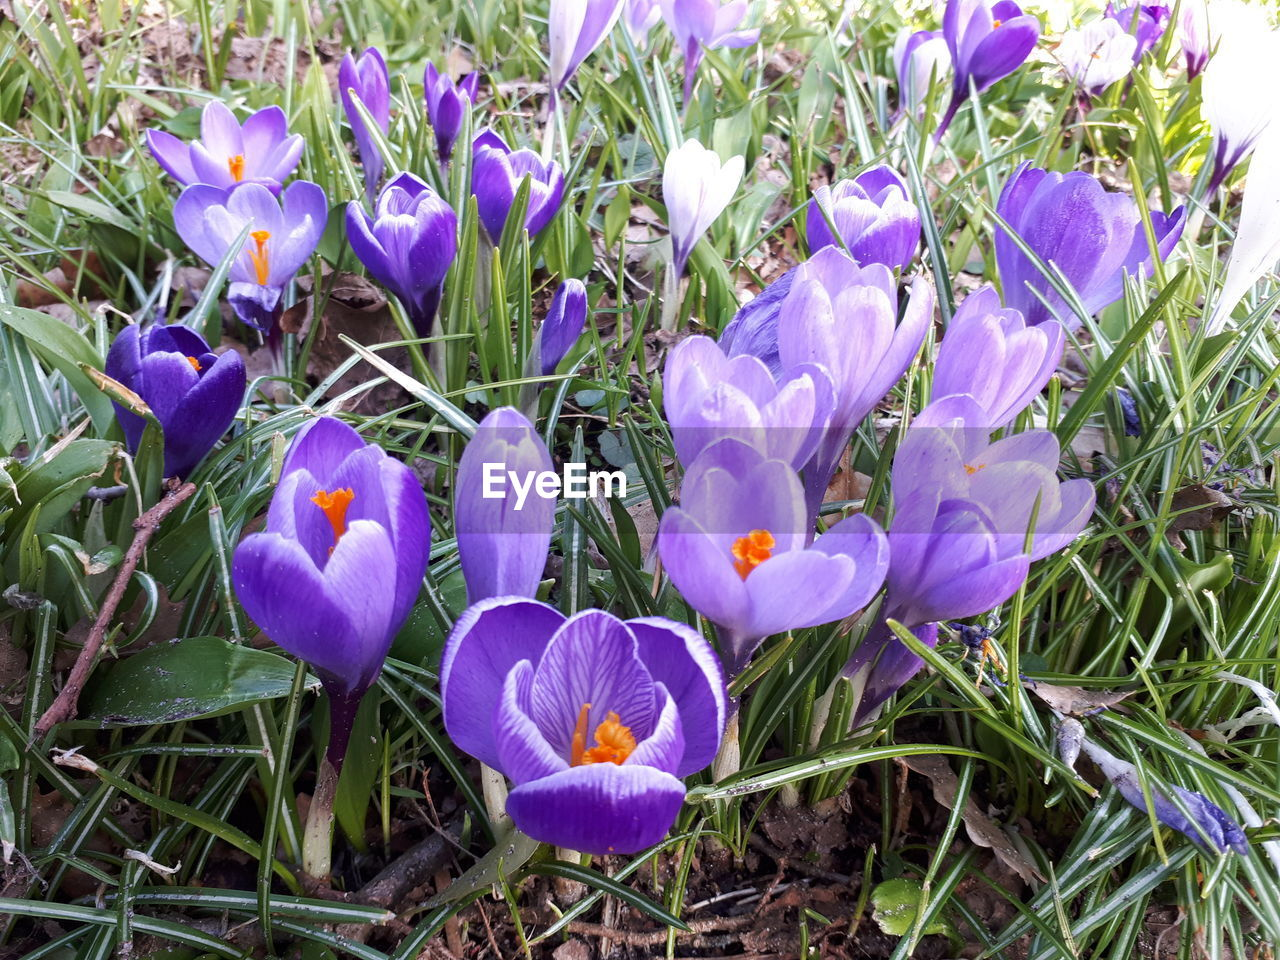 flowering plant, flower, plant, petal, vulnerability, fragility, beauty in nature, freshness, growth, purple, crocus, iris, close-up, inflorescence, flower head, land, field, nature, no people, day, outdoors, springtime, flowerbed